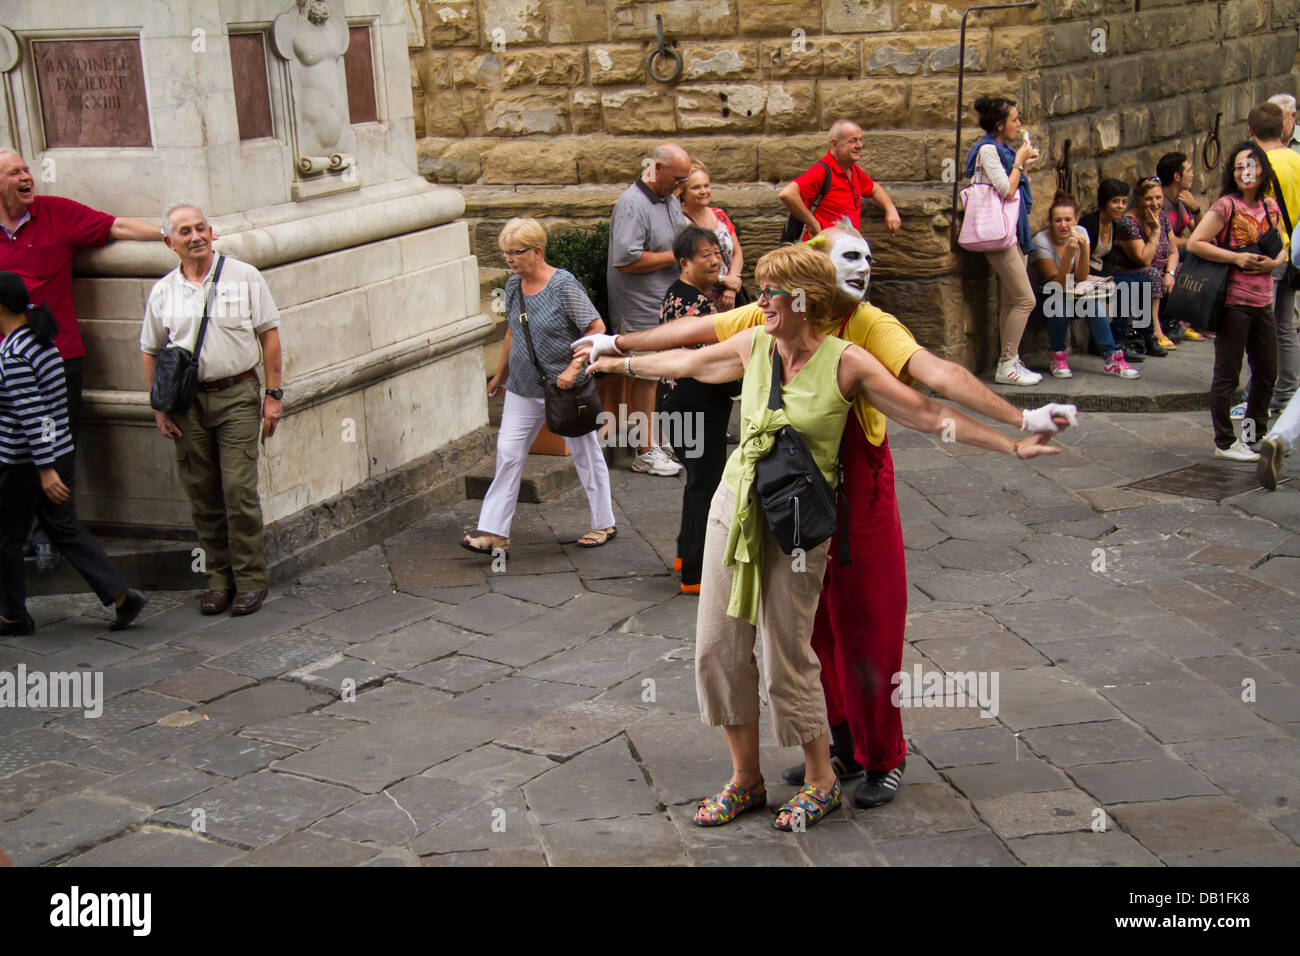 Clown entertaining tourists on the streets of Florence (Firenze), Italy - Stock Image